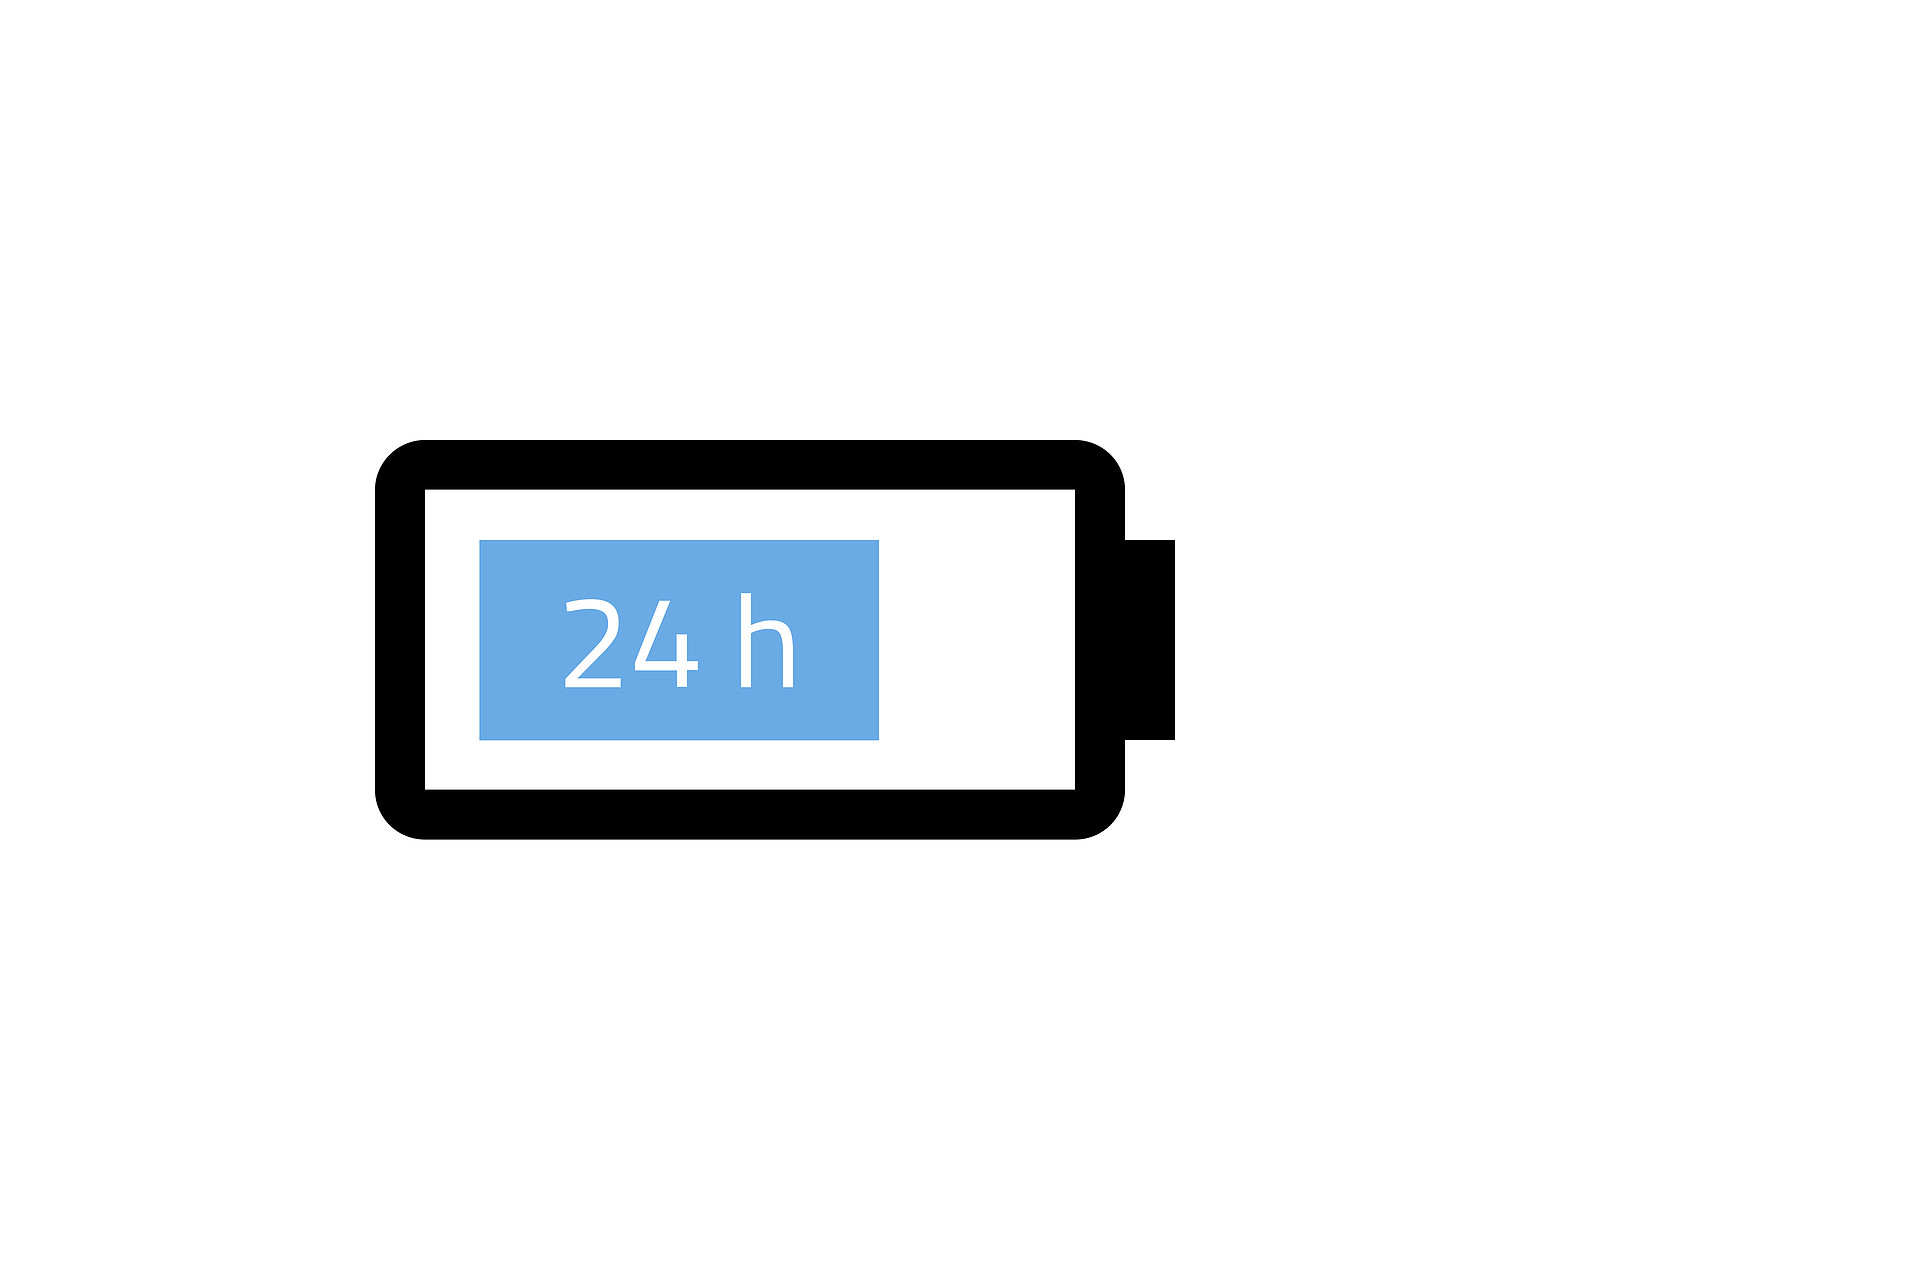 <strong>24 hour</strong> parking mode on a single charge